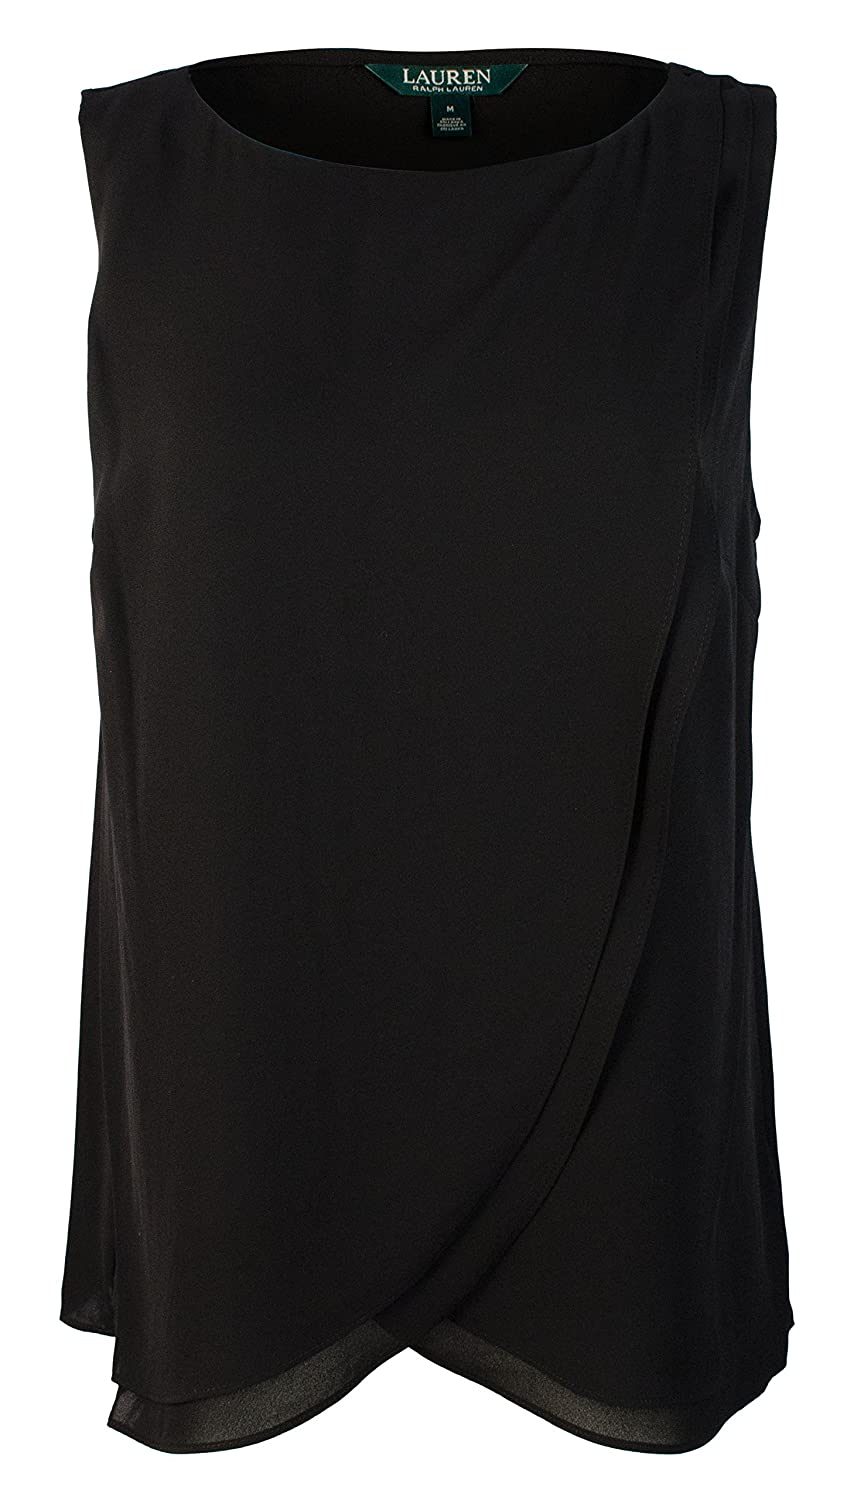 Ralph Lauren Womens Black Sleeveless Scoop Neck Top US Size  L